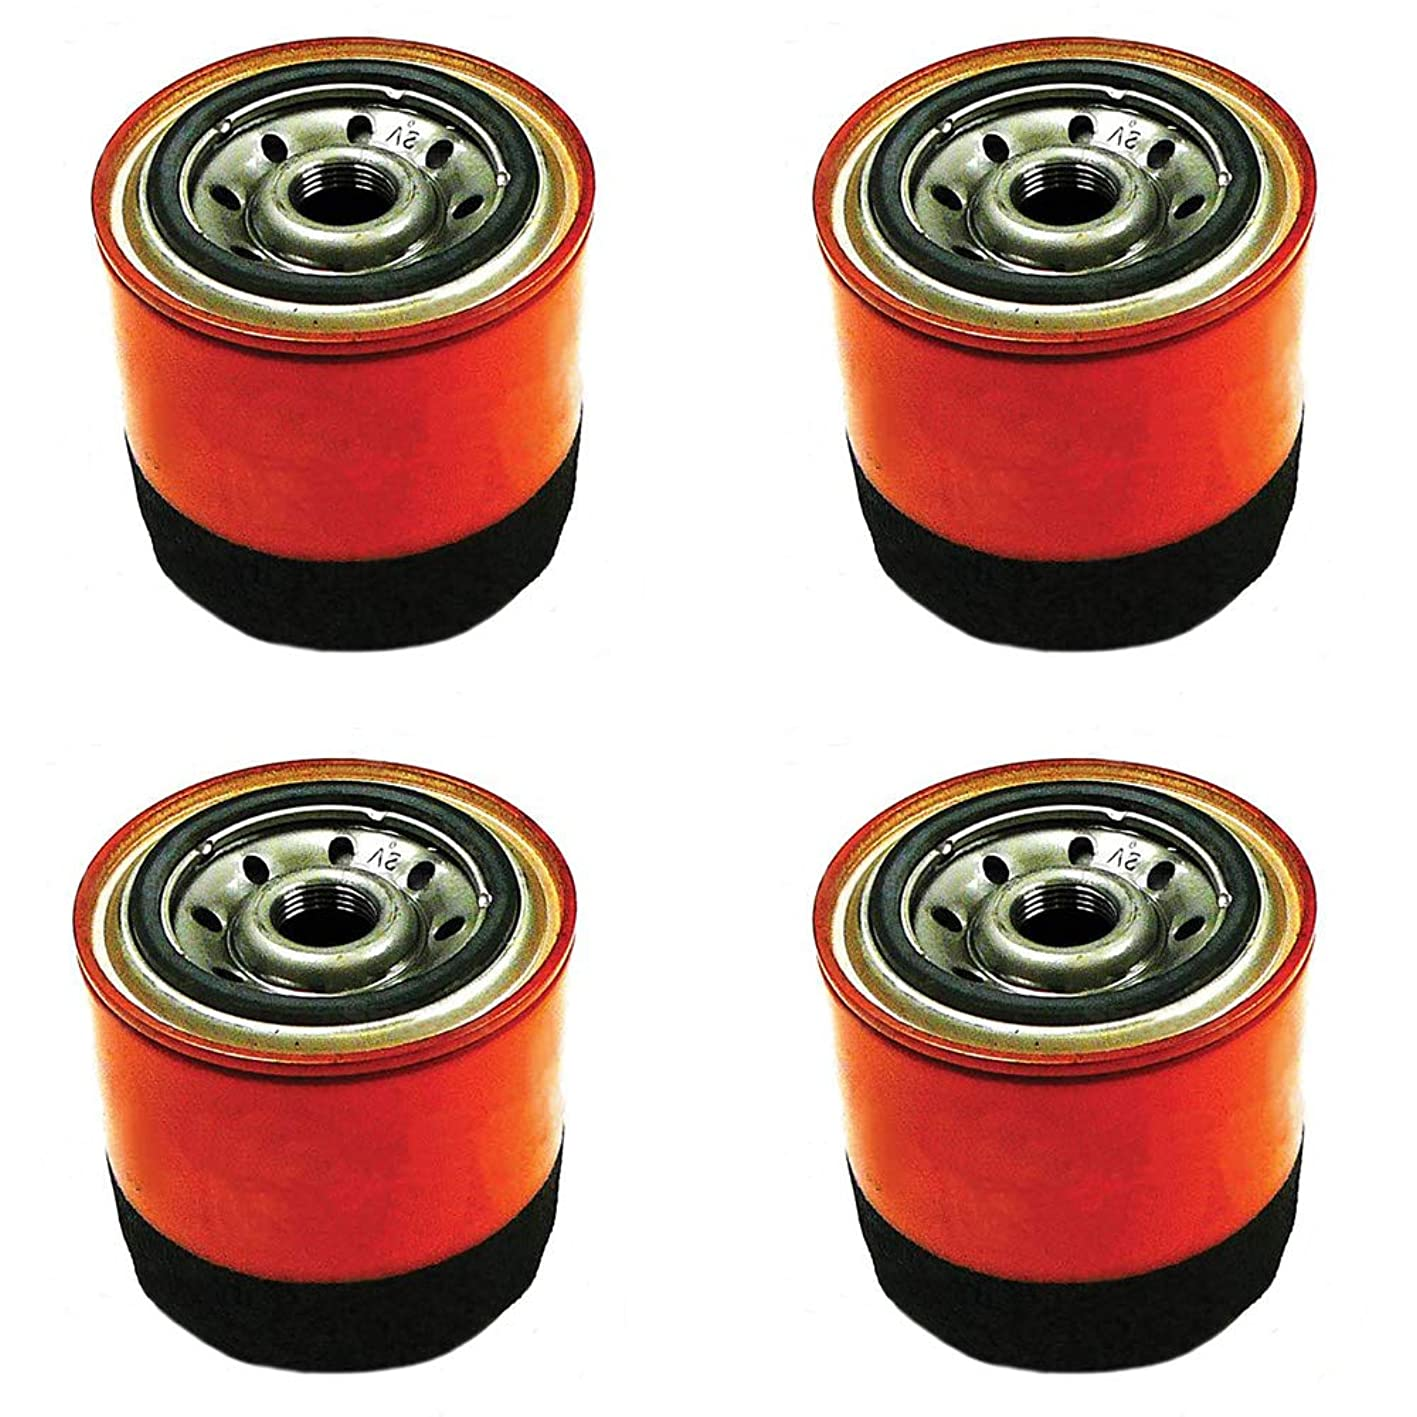 Kioti Tractor Engine Oil Filter E6201-32443 4 Pack qwlubfirvly398